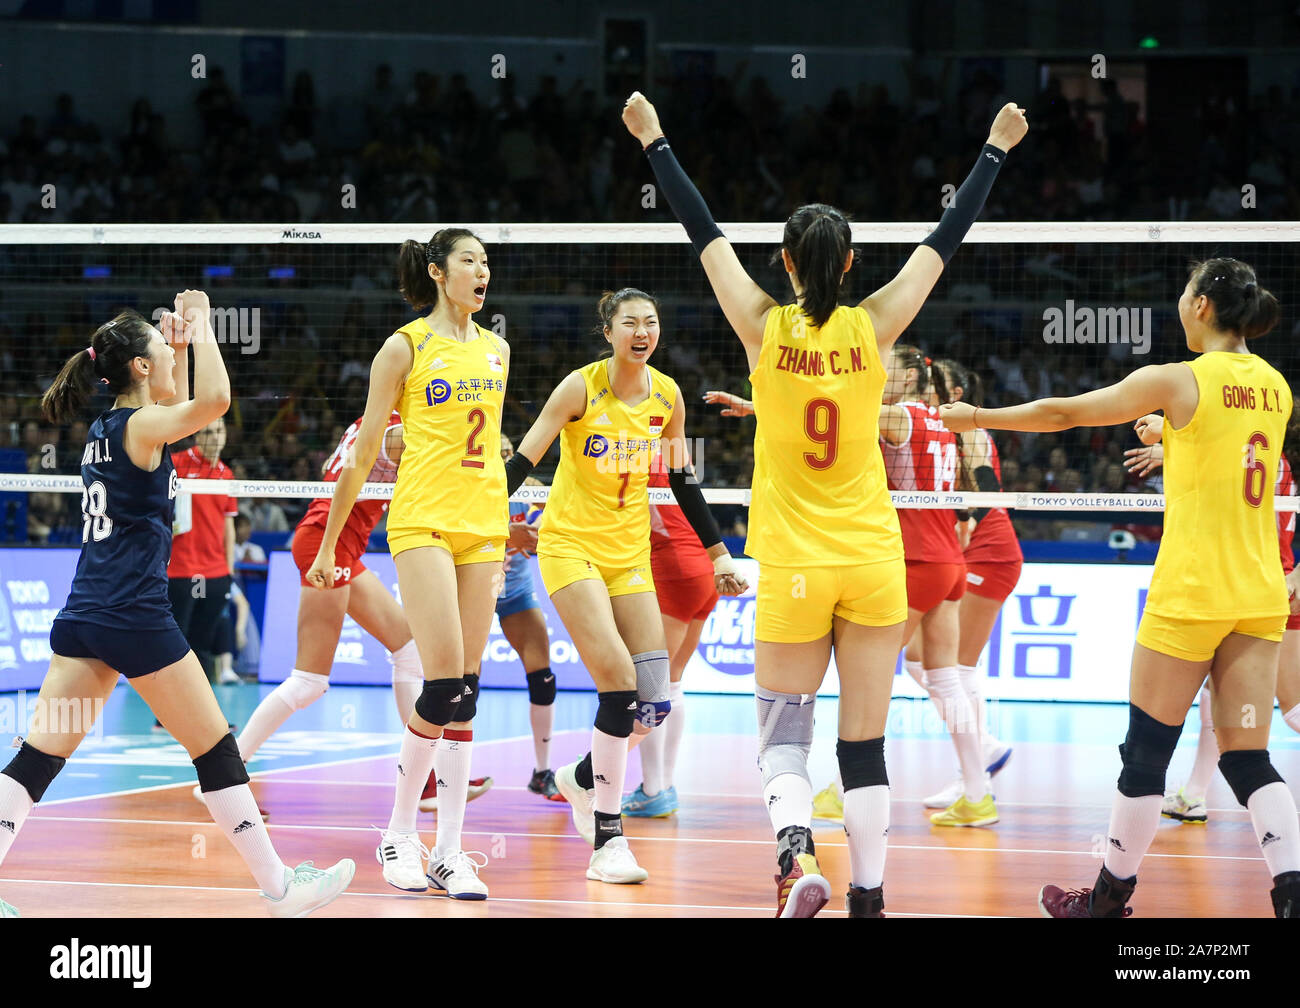 China Women S National Volleyball Team Celebrate After Scoring During The 2019 Fivb Women S Volleyball Intercontinental Olympic Qualification Tourname Stock Photo Alamy